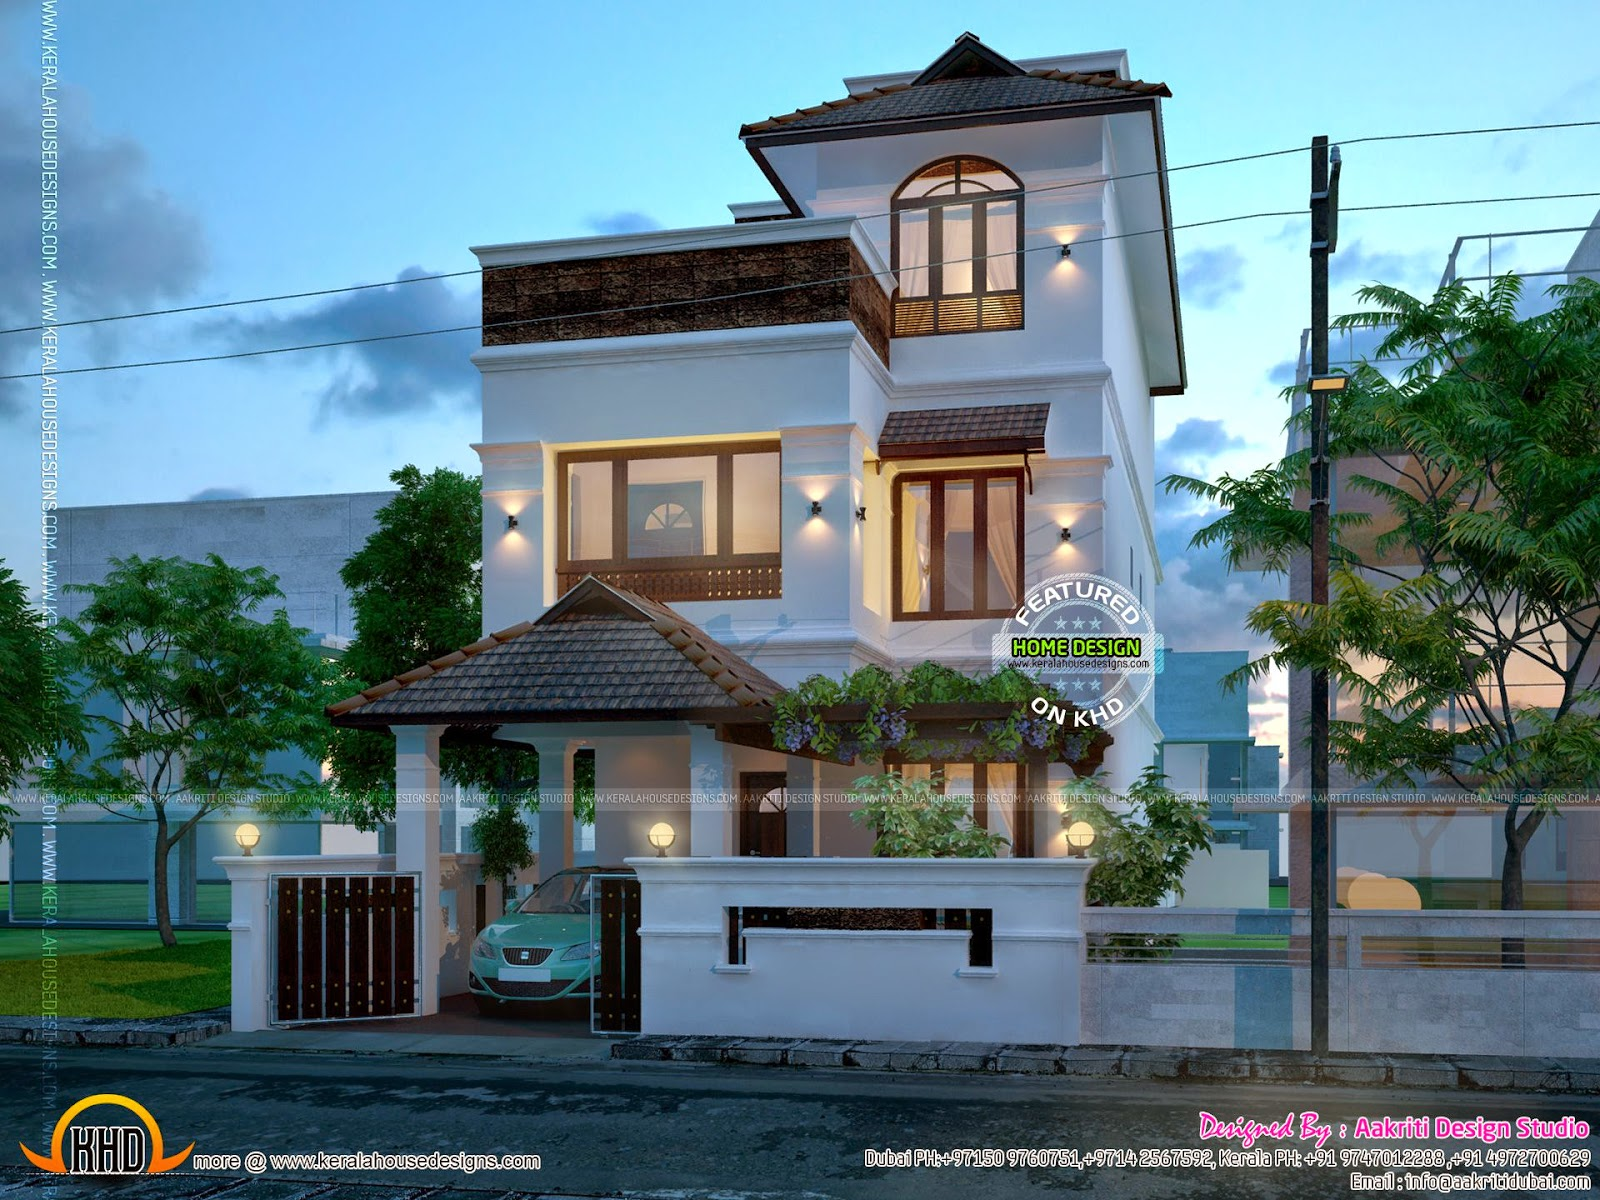 New house design kerala home design and floor plans for New home design in kerala